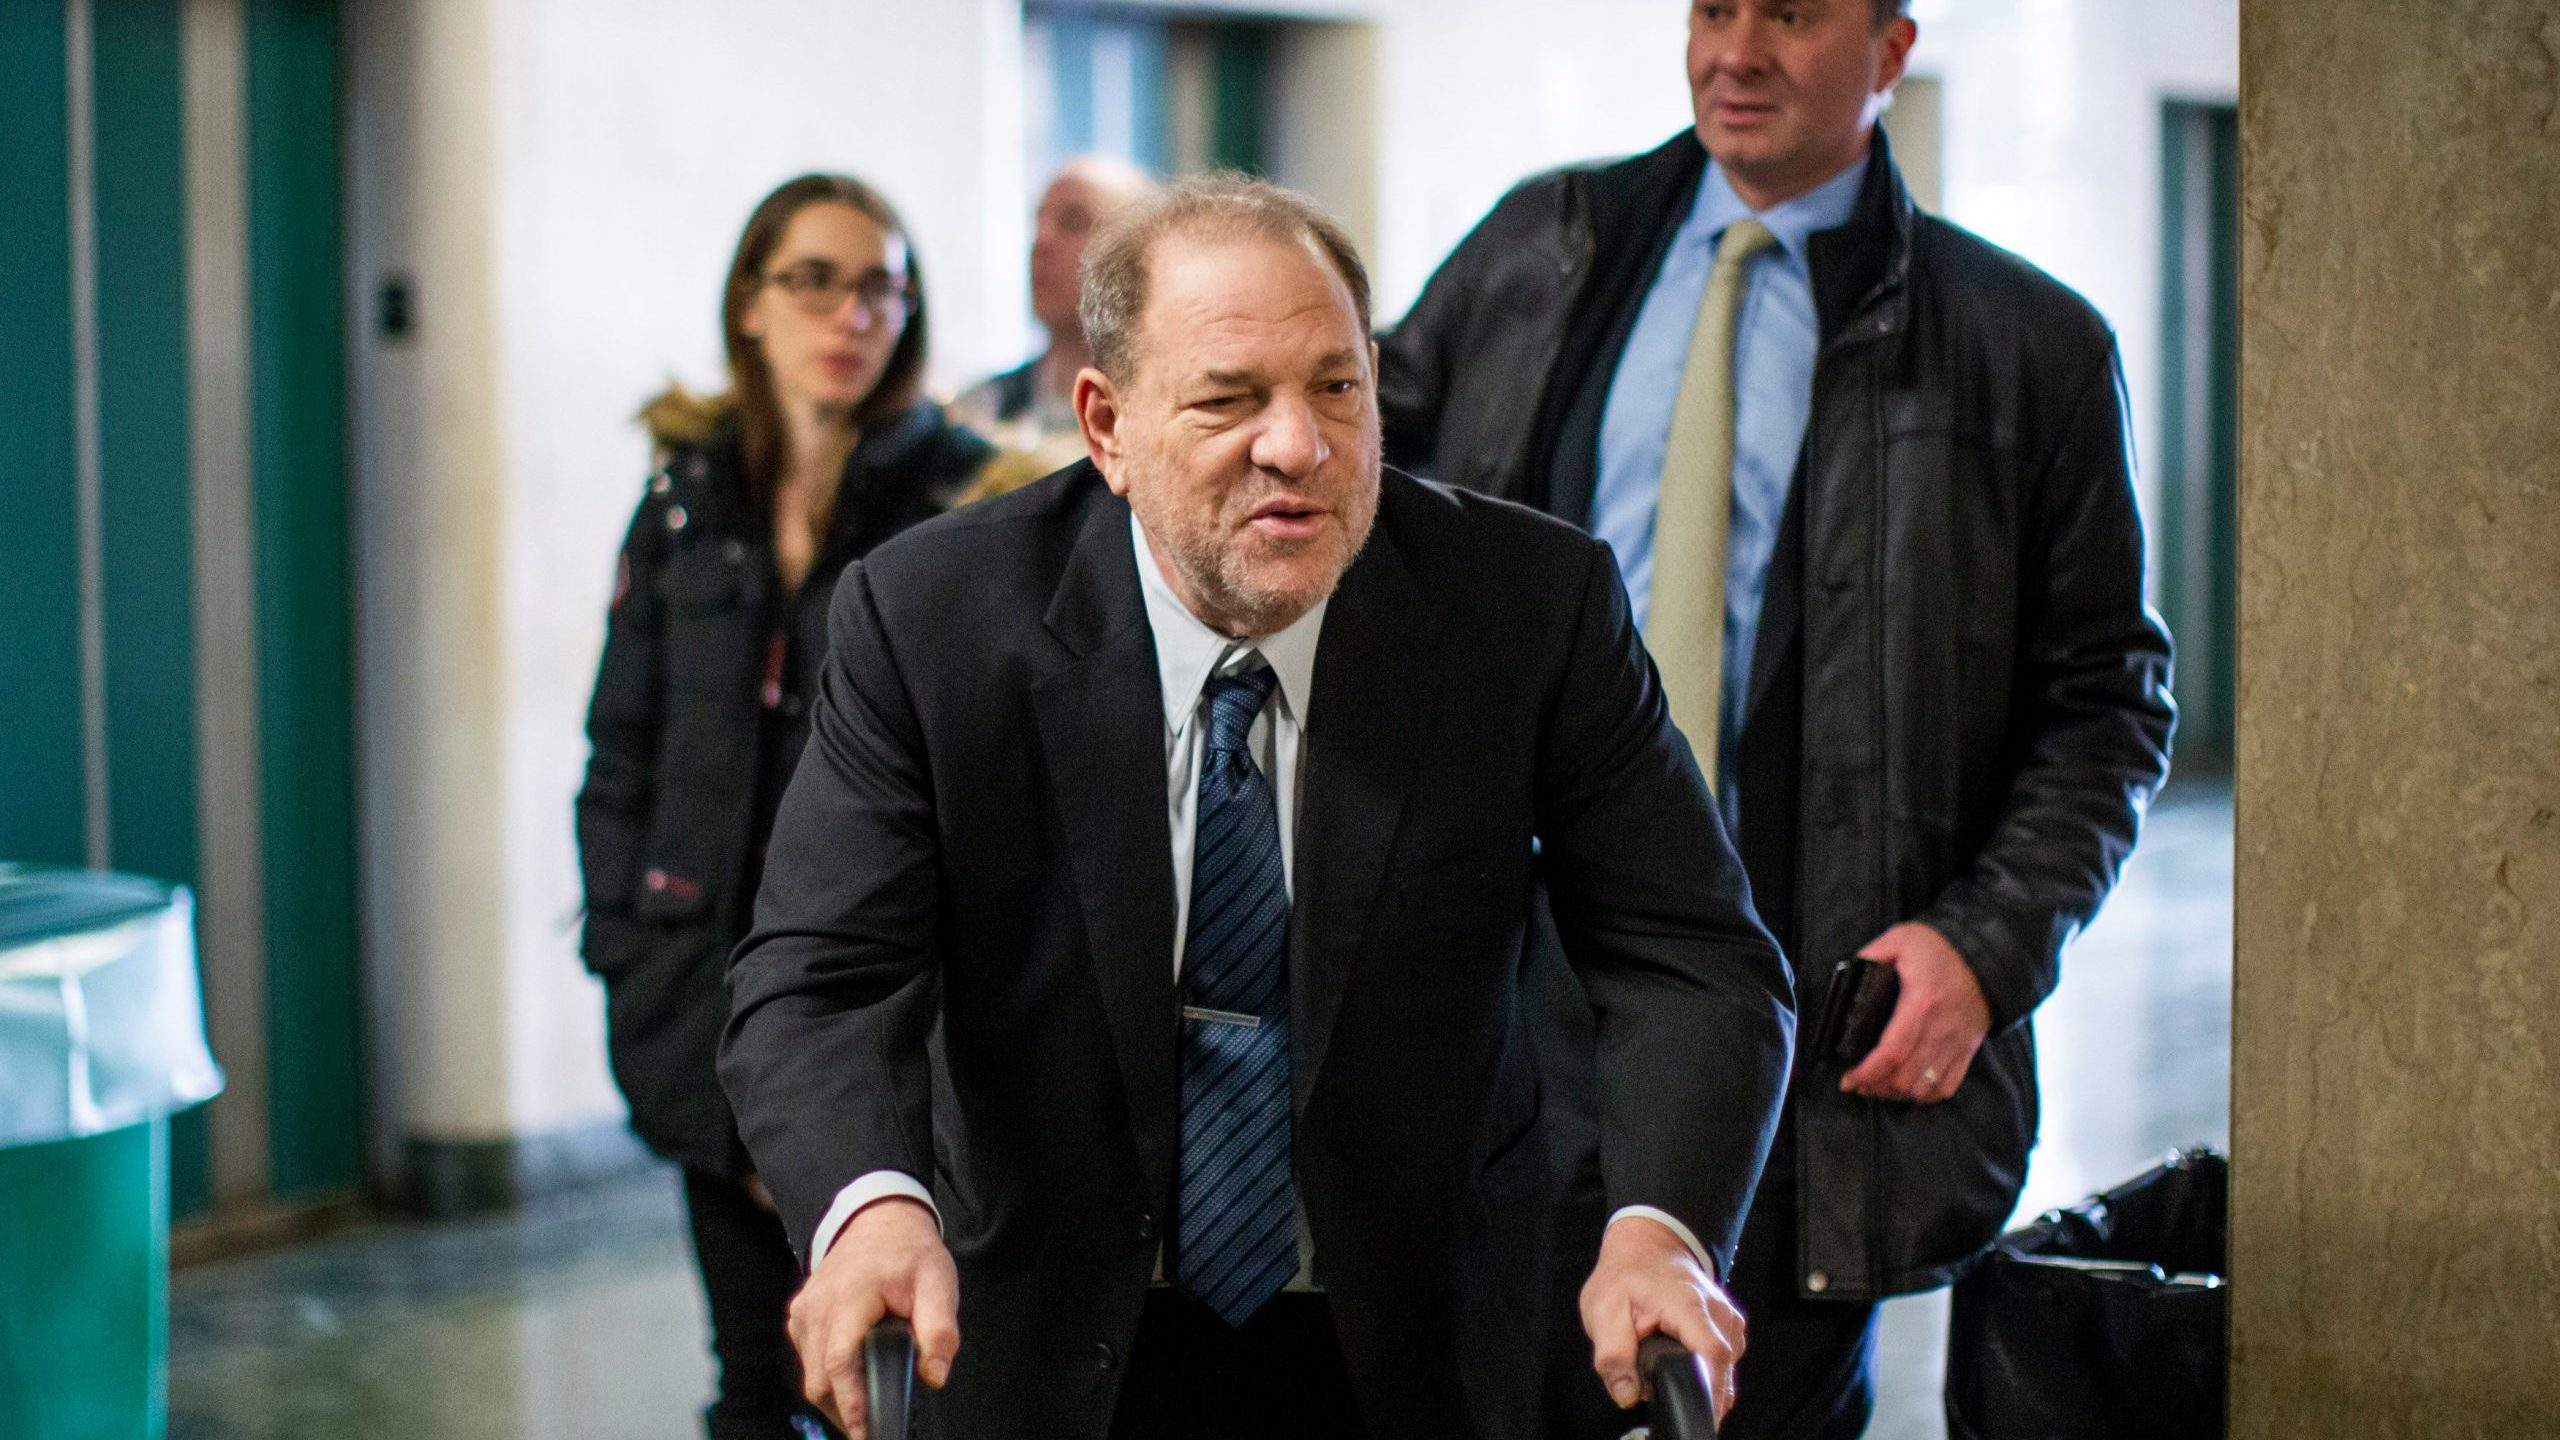 Harvey Weinstein arrives at the courtroom for his sexual assault trial at Manhattan criminal court on Feb. 3, 2020, in New York City. (Credit: Eduardo Munoz Alvarez/Getty Images)